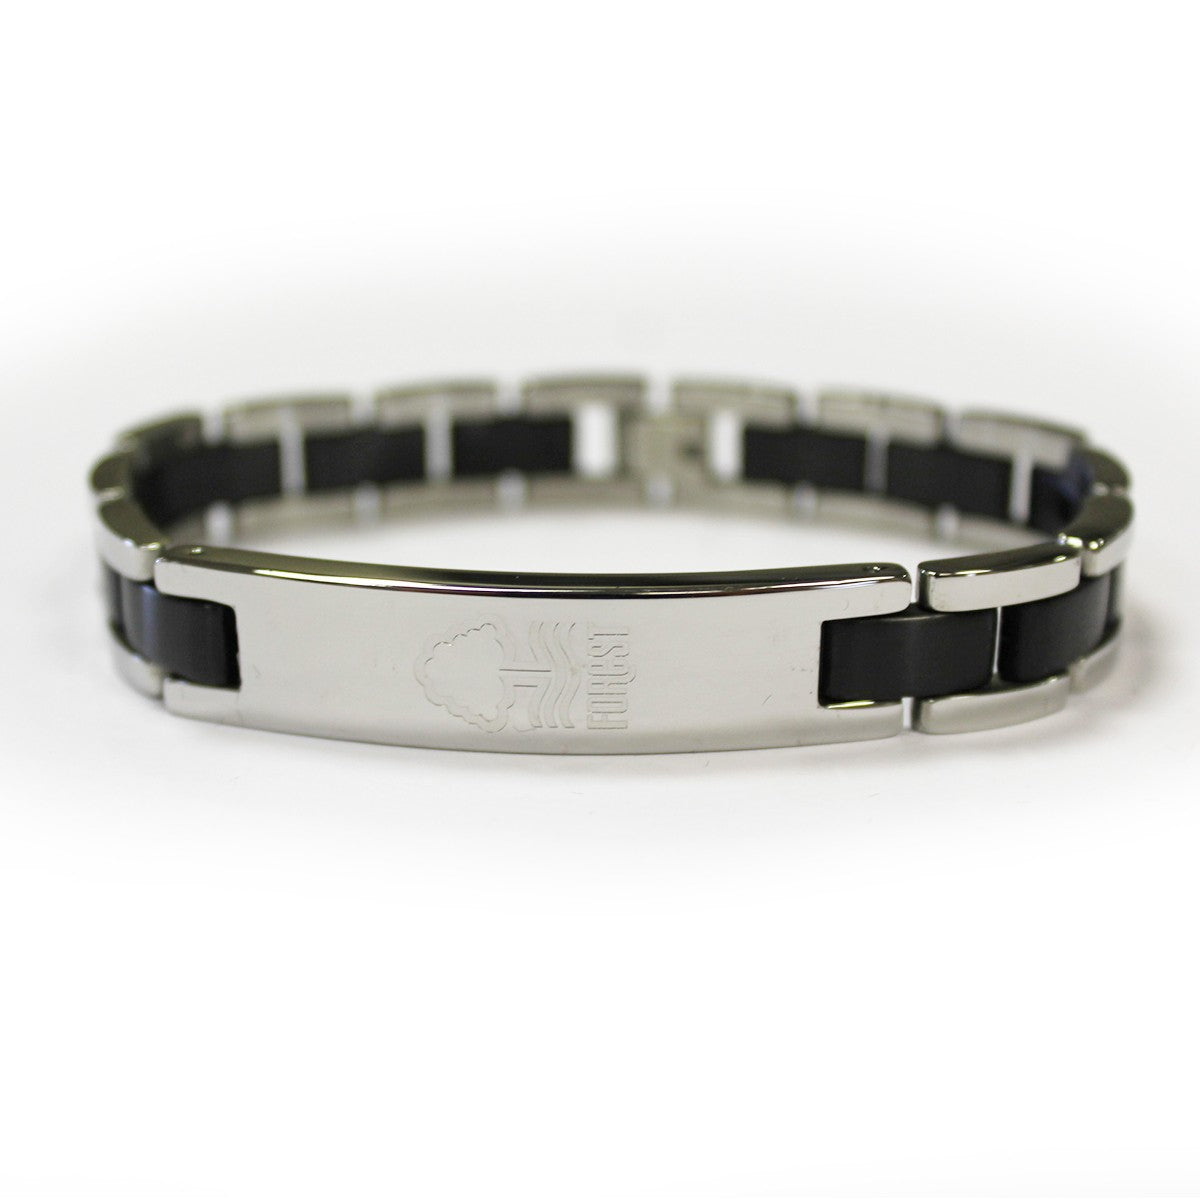 NFFC Black Inlay Crest Bracelet